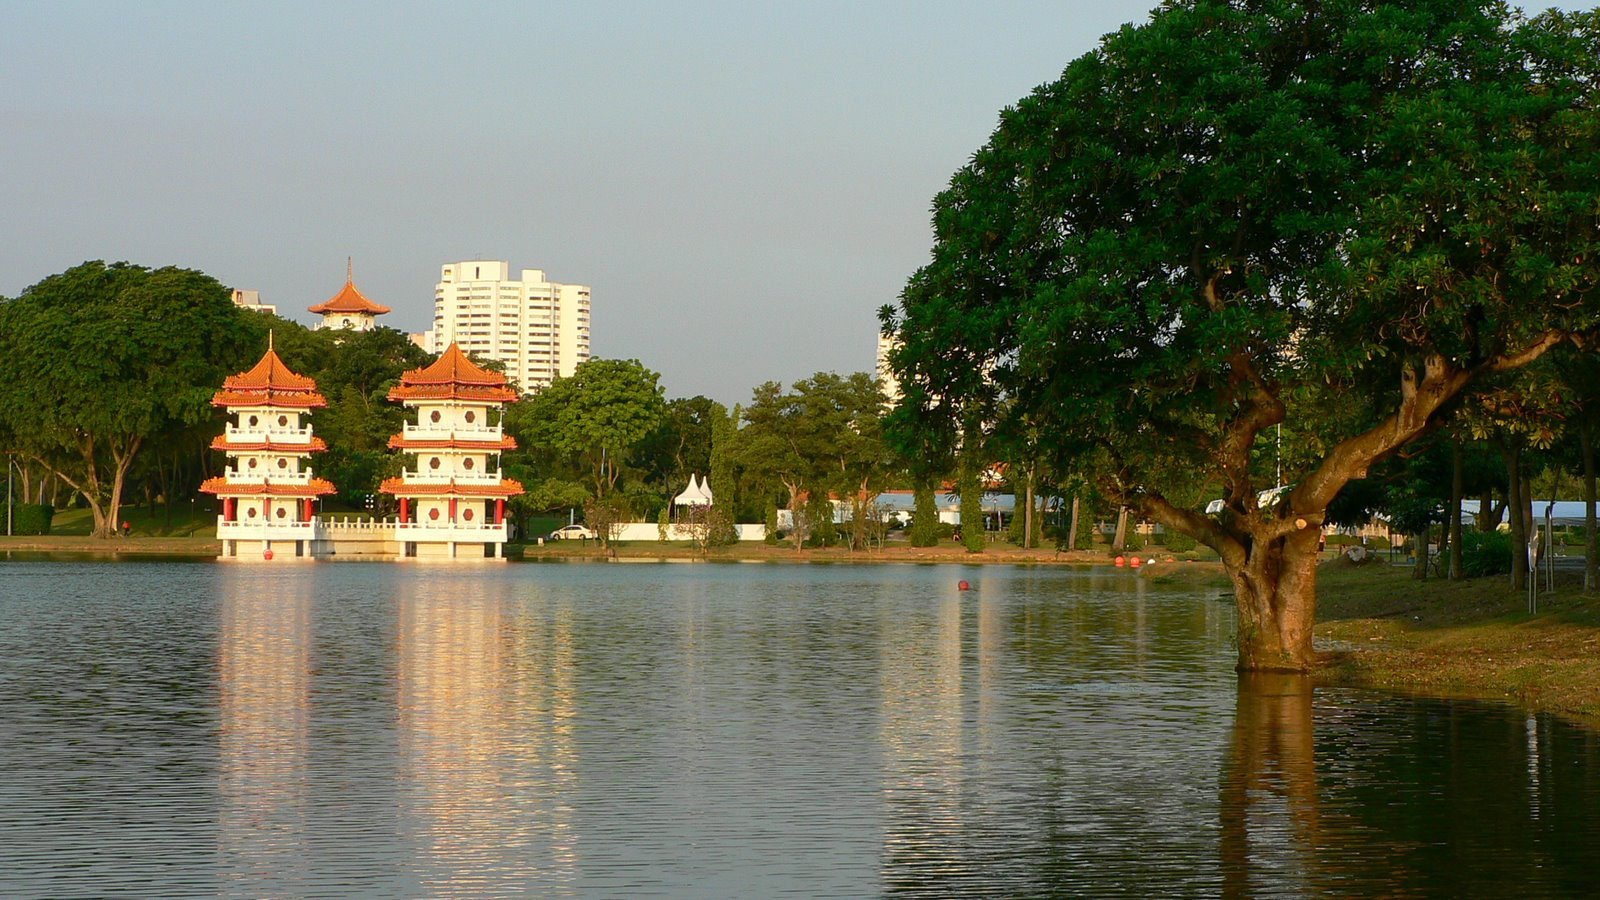 Jurong Lake is known for its tranquility, but not for long once the re-development project starts